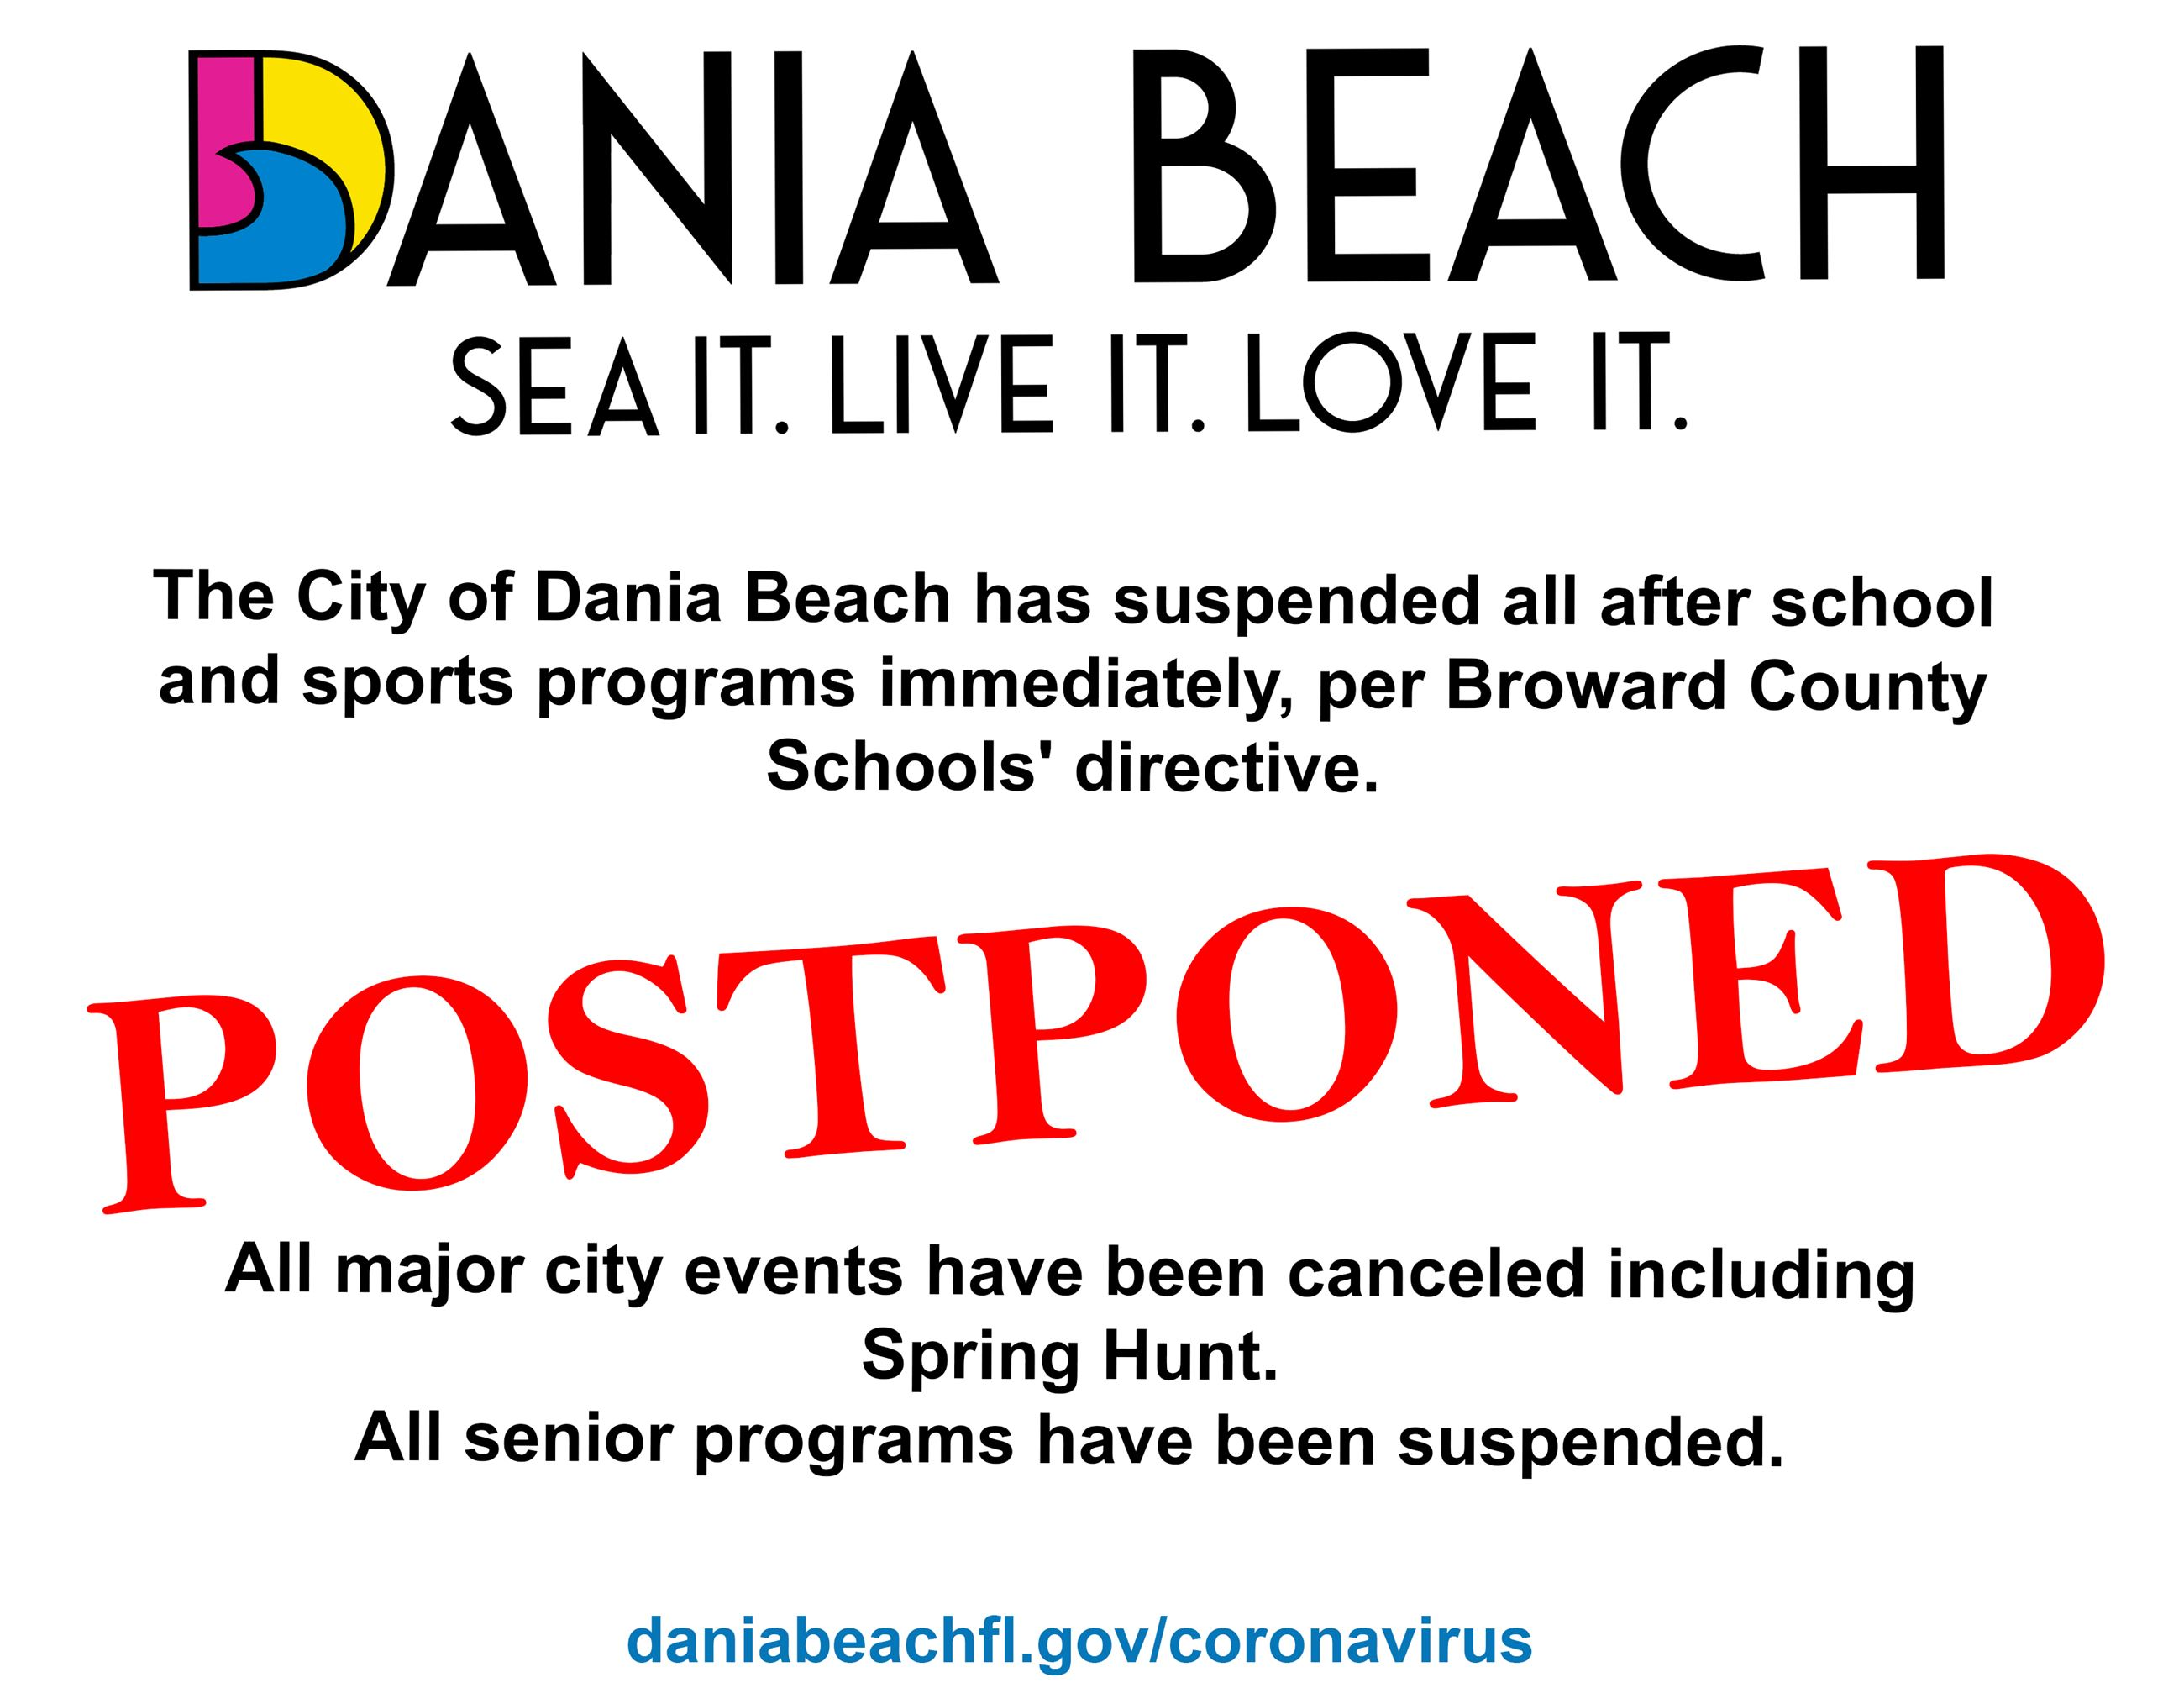 The City of Dania Beach has suspended all after school and sports programs and all major city events